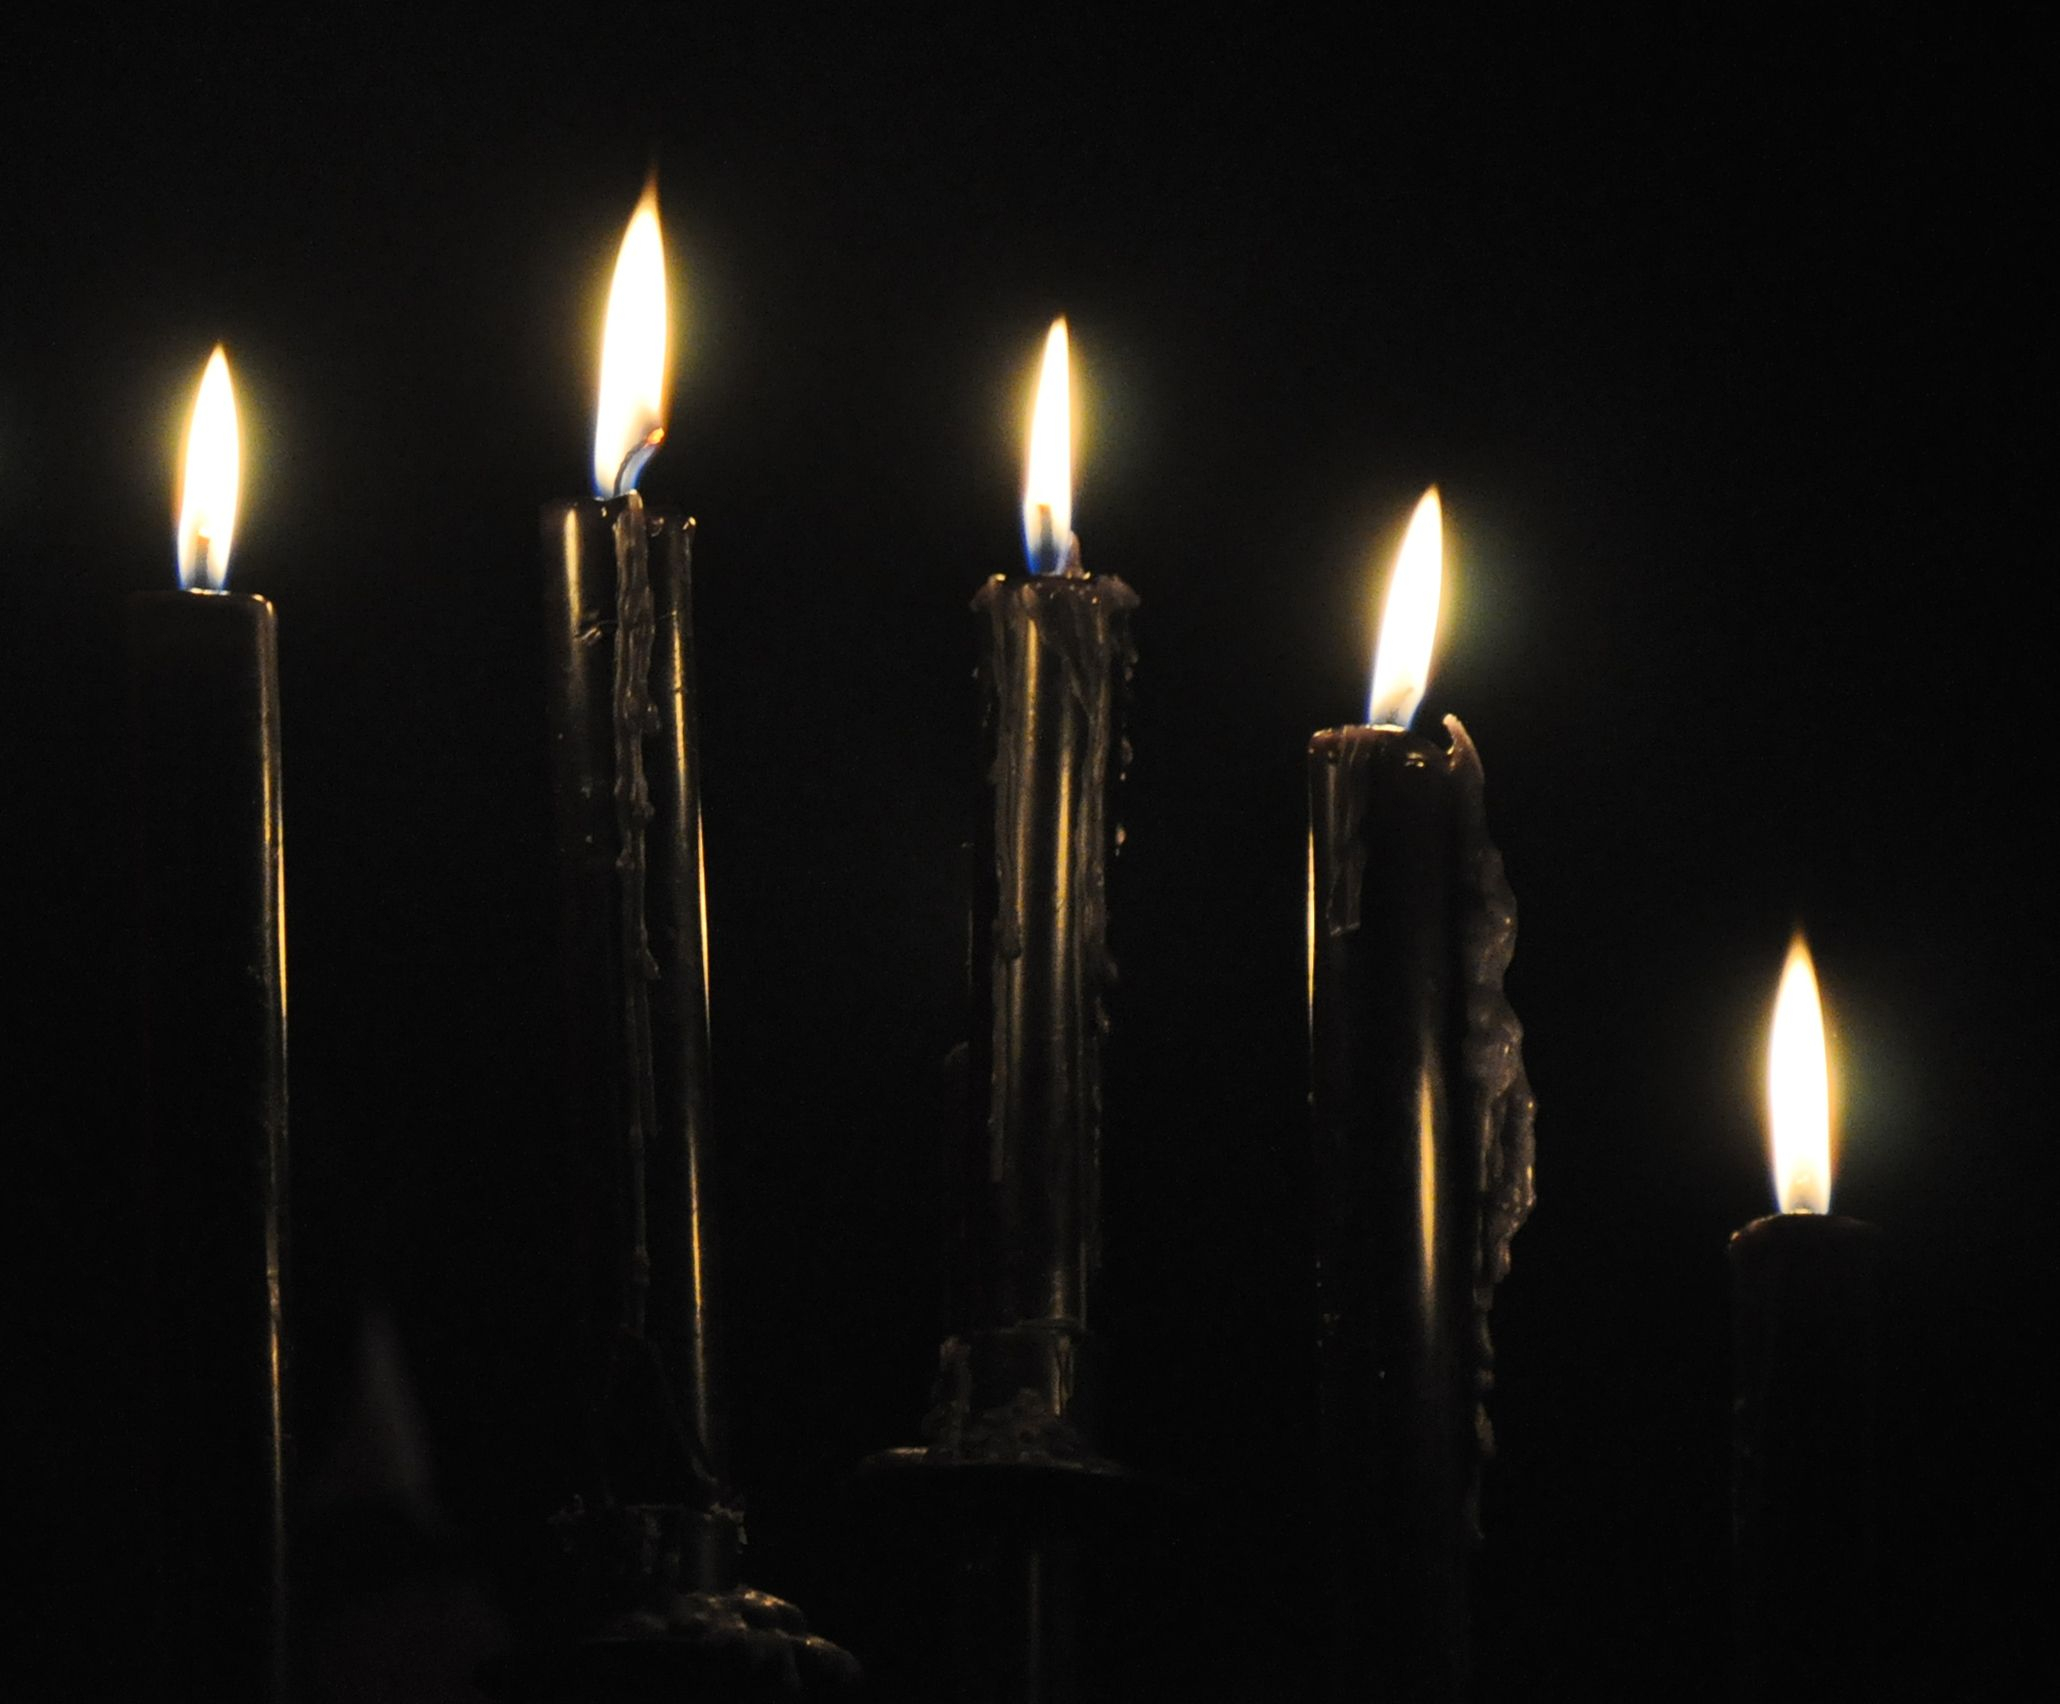 Design Gothic Candles black candle images google search candles pinterest candles